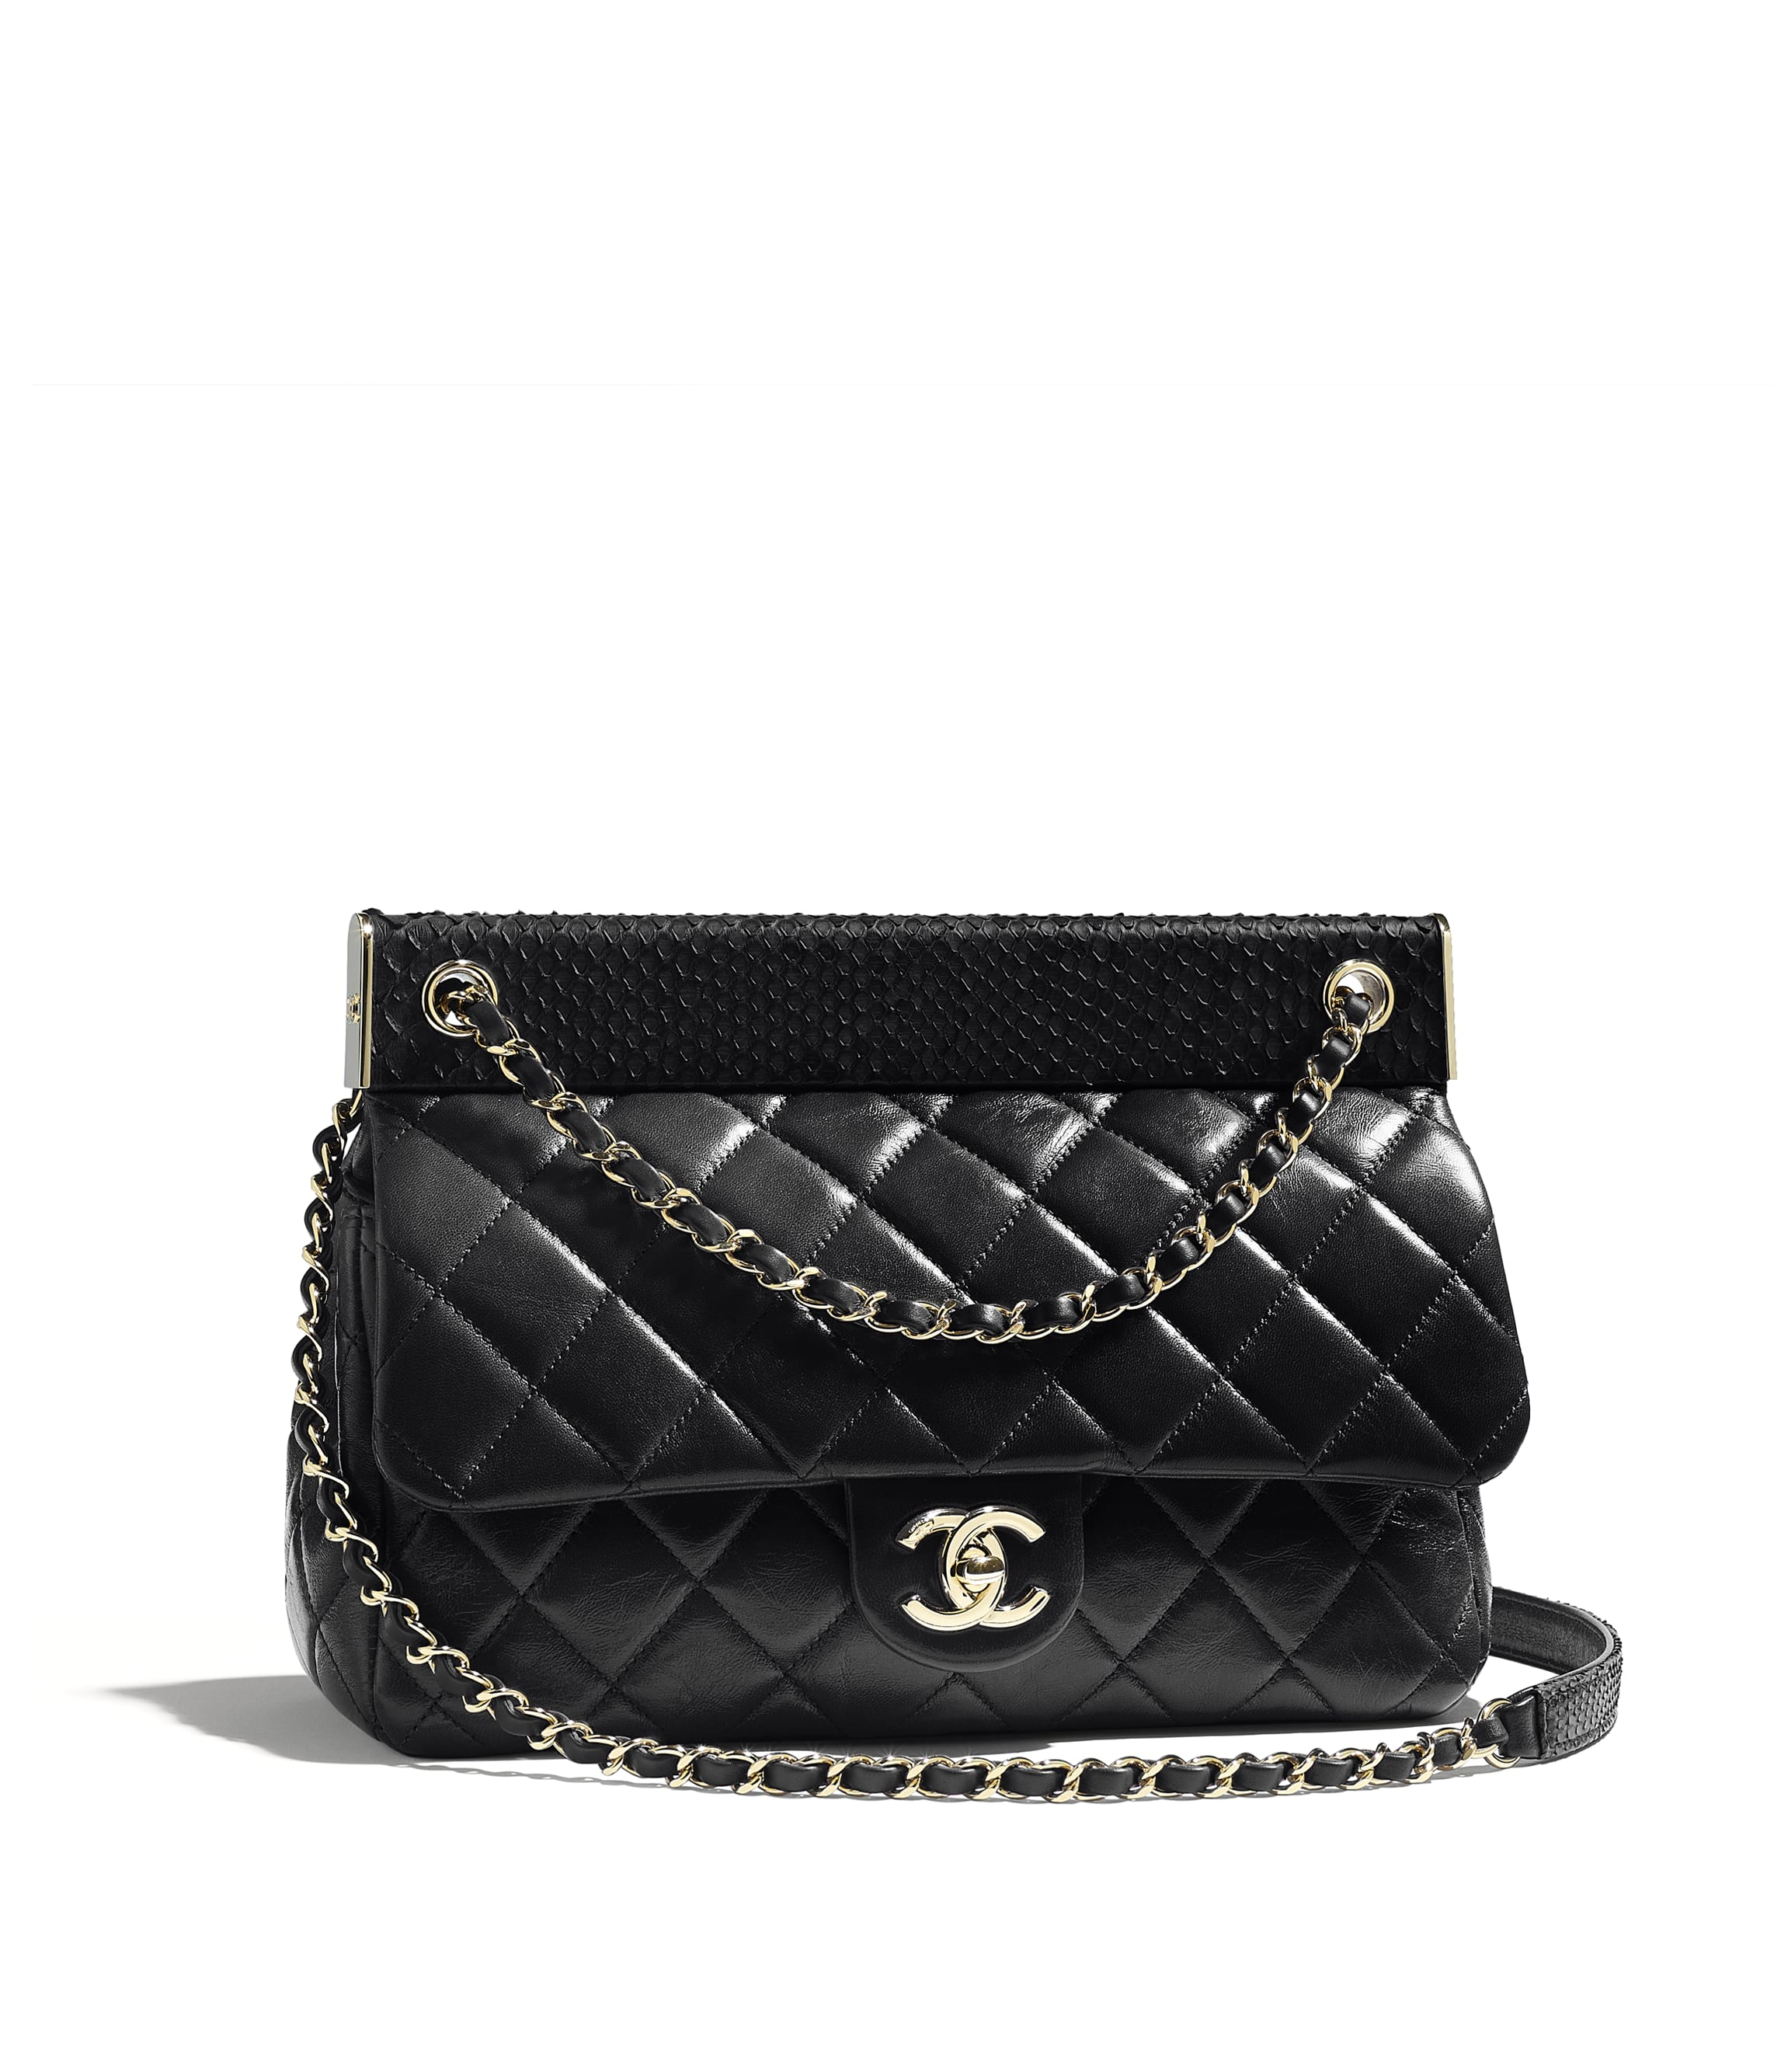 3d792c4d6b Chanel Bags Online Shop Uk- Fenix Toulouse Handball